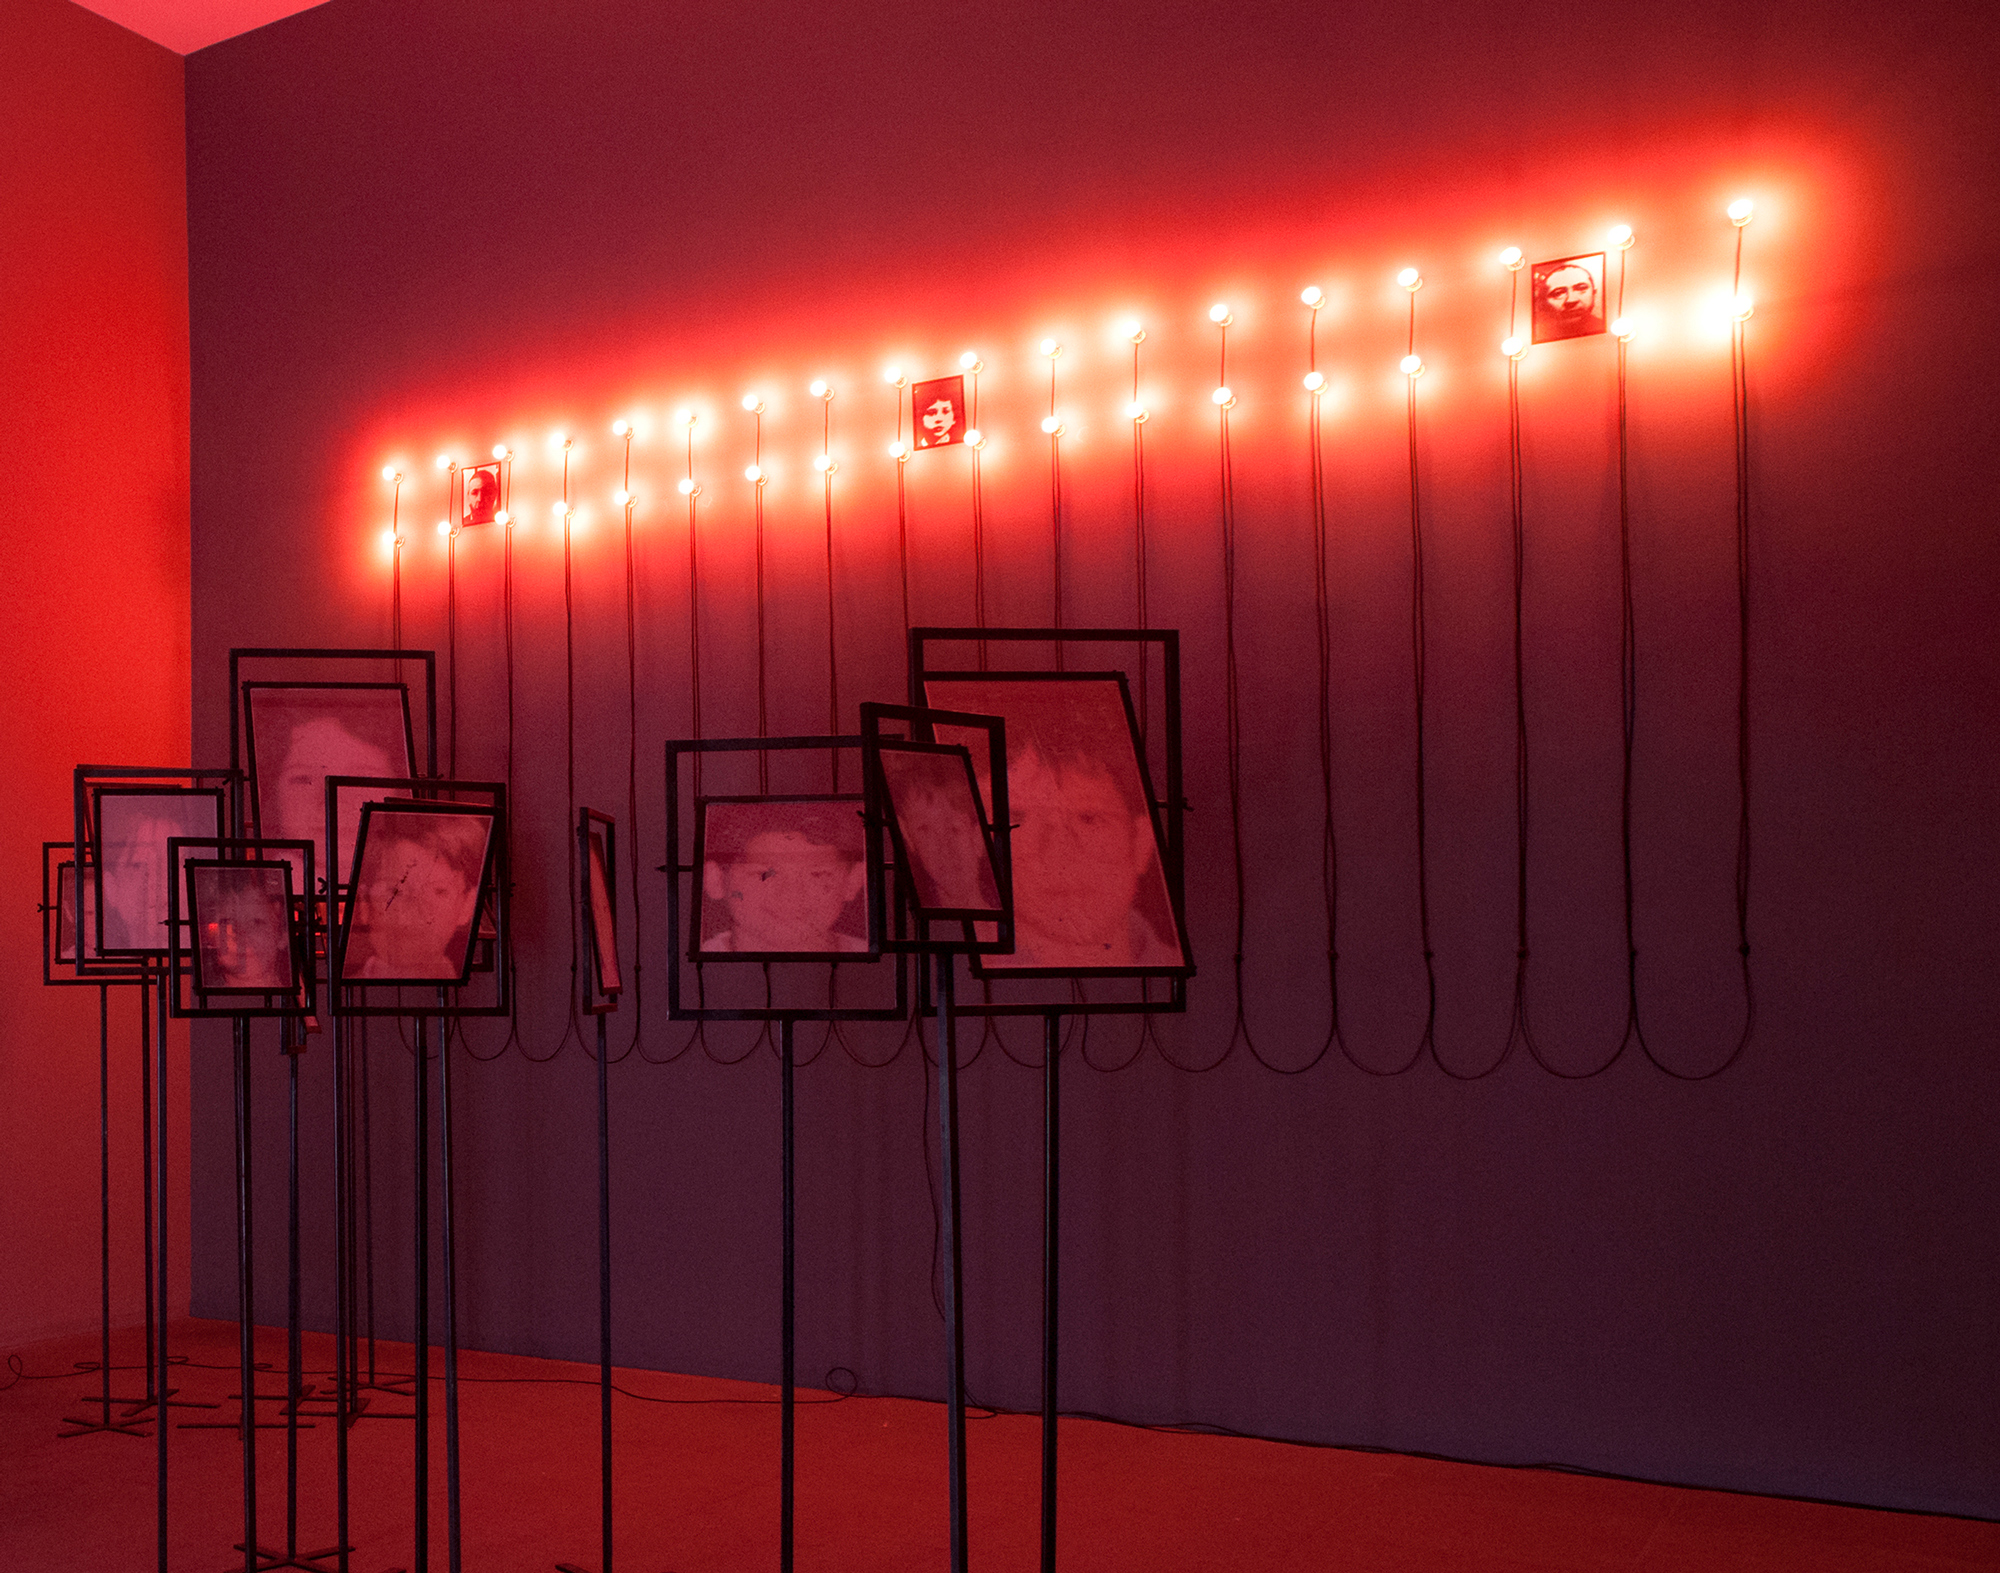 Christian Boltanski, Lumières 3 framed photographs, 36 LED and cables